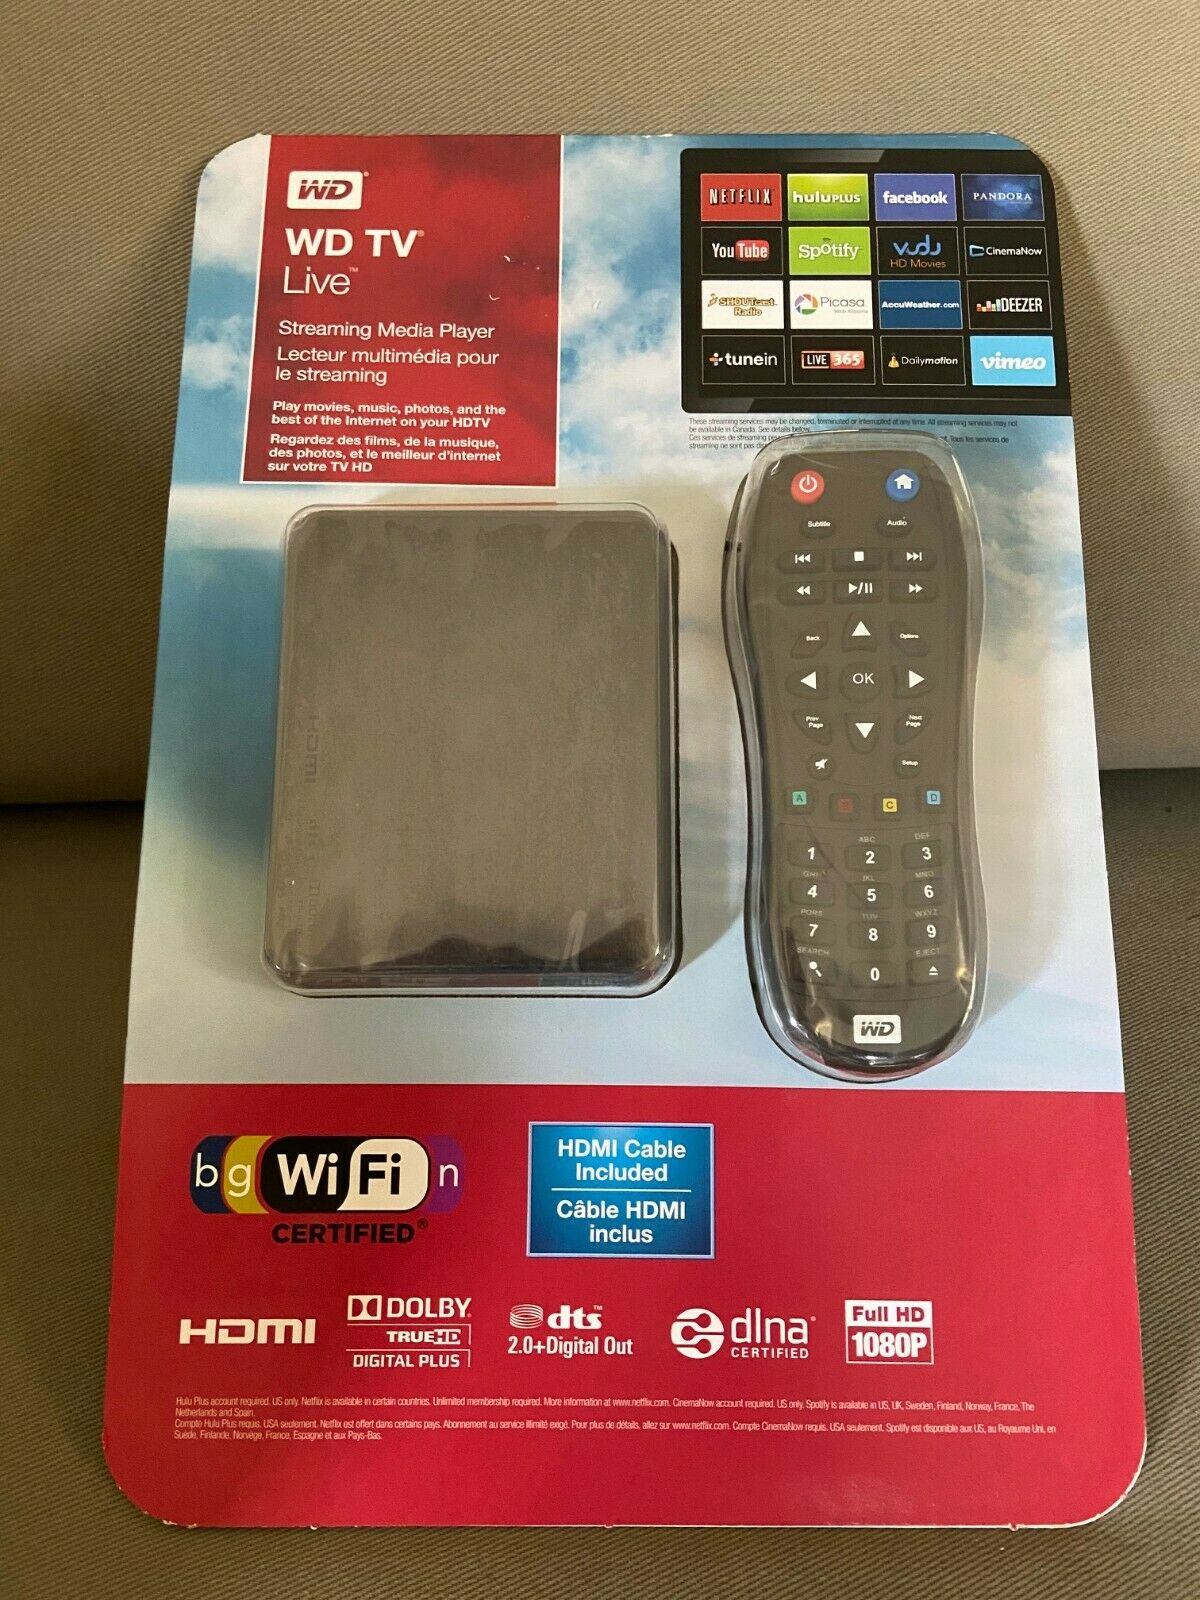 WD TV Live Streaming Media Player Wi-Fi 1080p Brand New Sealed 1080p brand live media new player sealed streaming